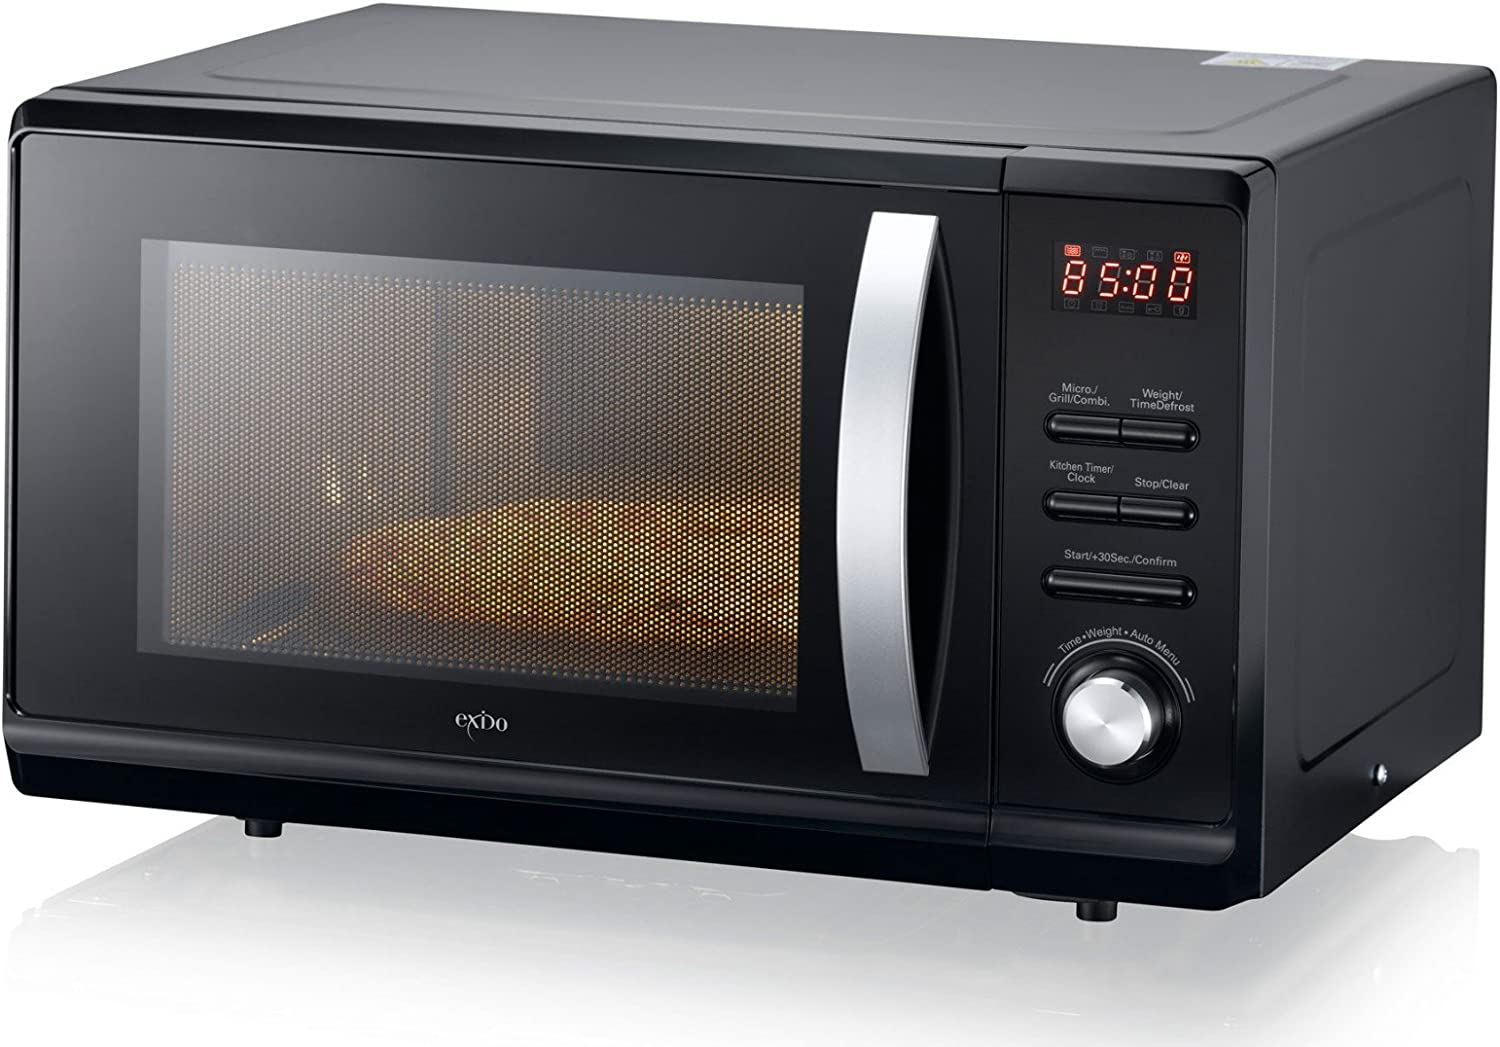 litre 1000 watt microwave with grill